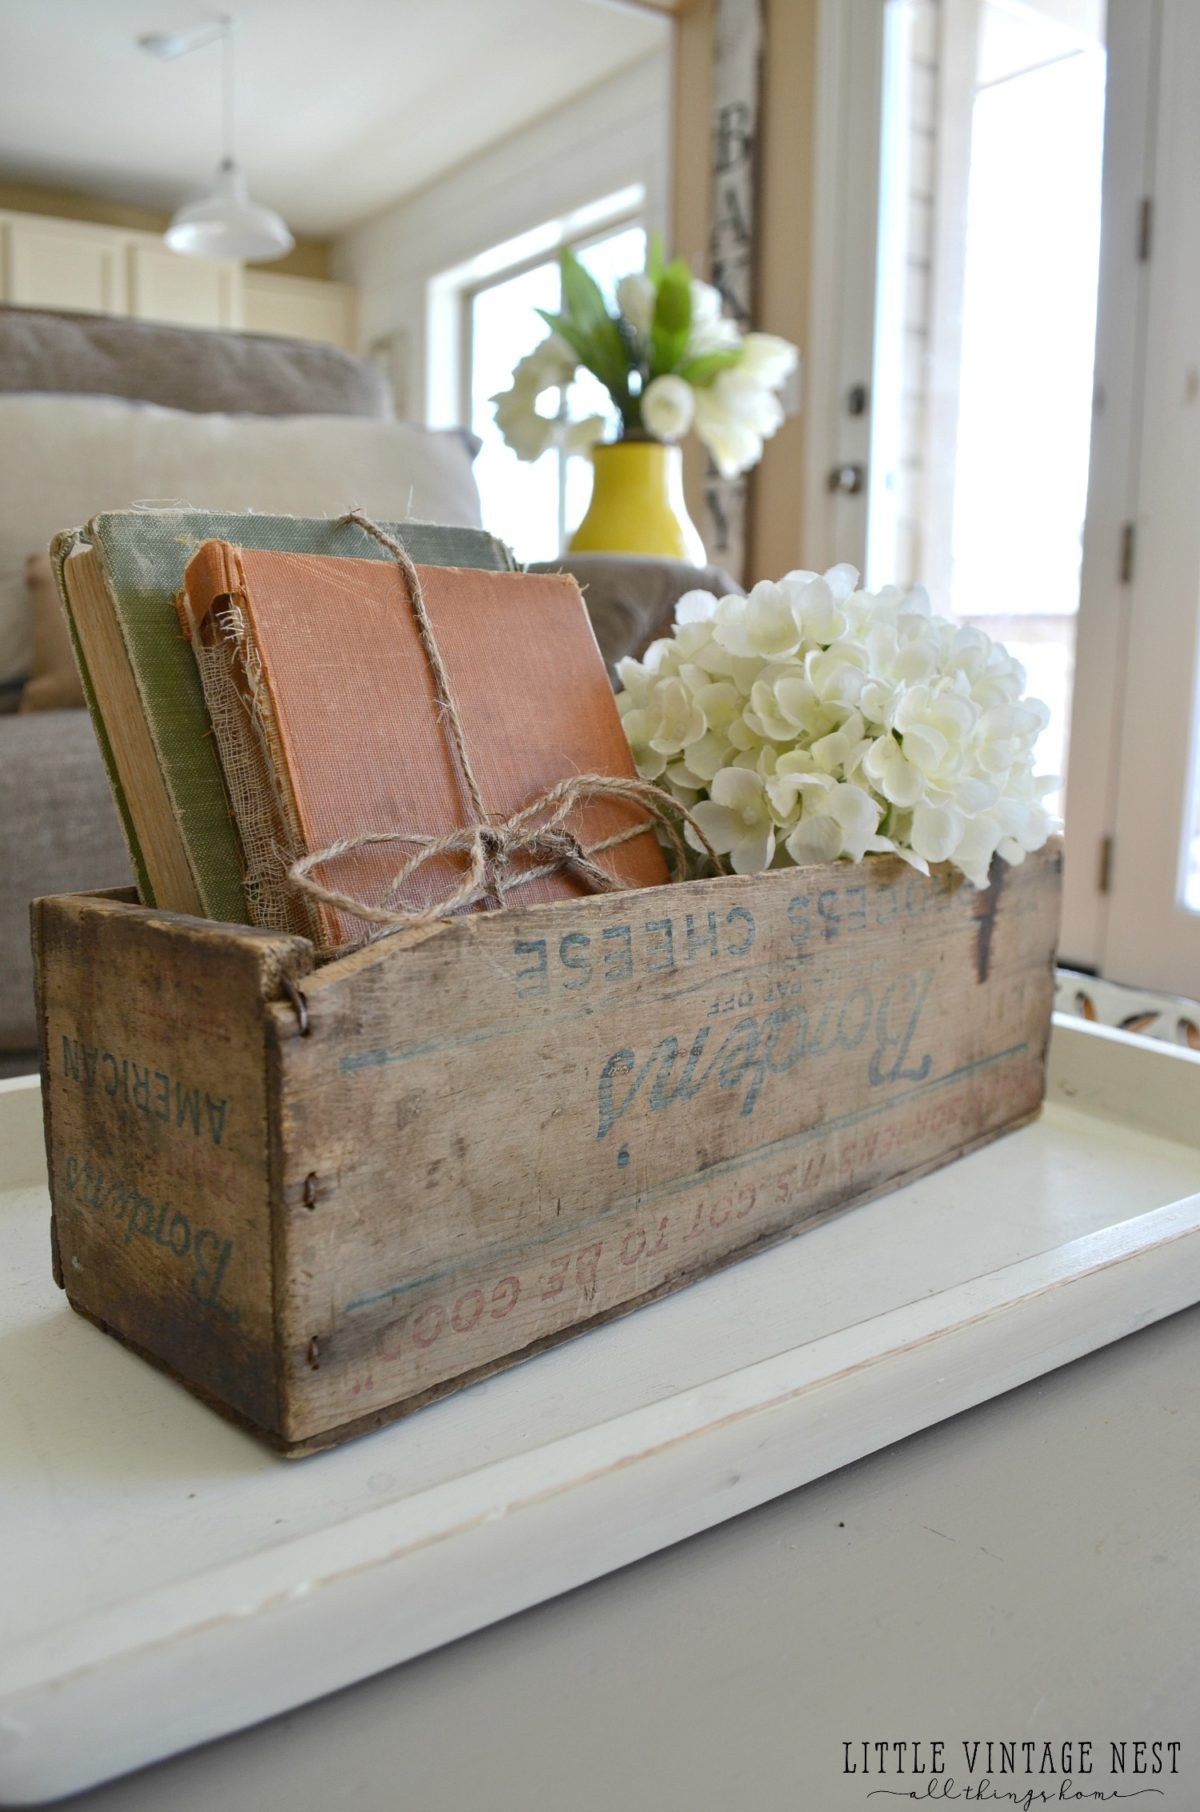 How to decorate with vintage decor little vintage nest for Your home decor